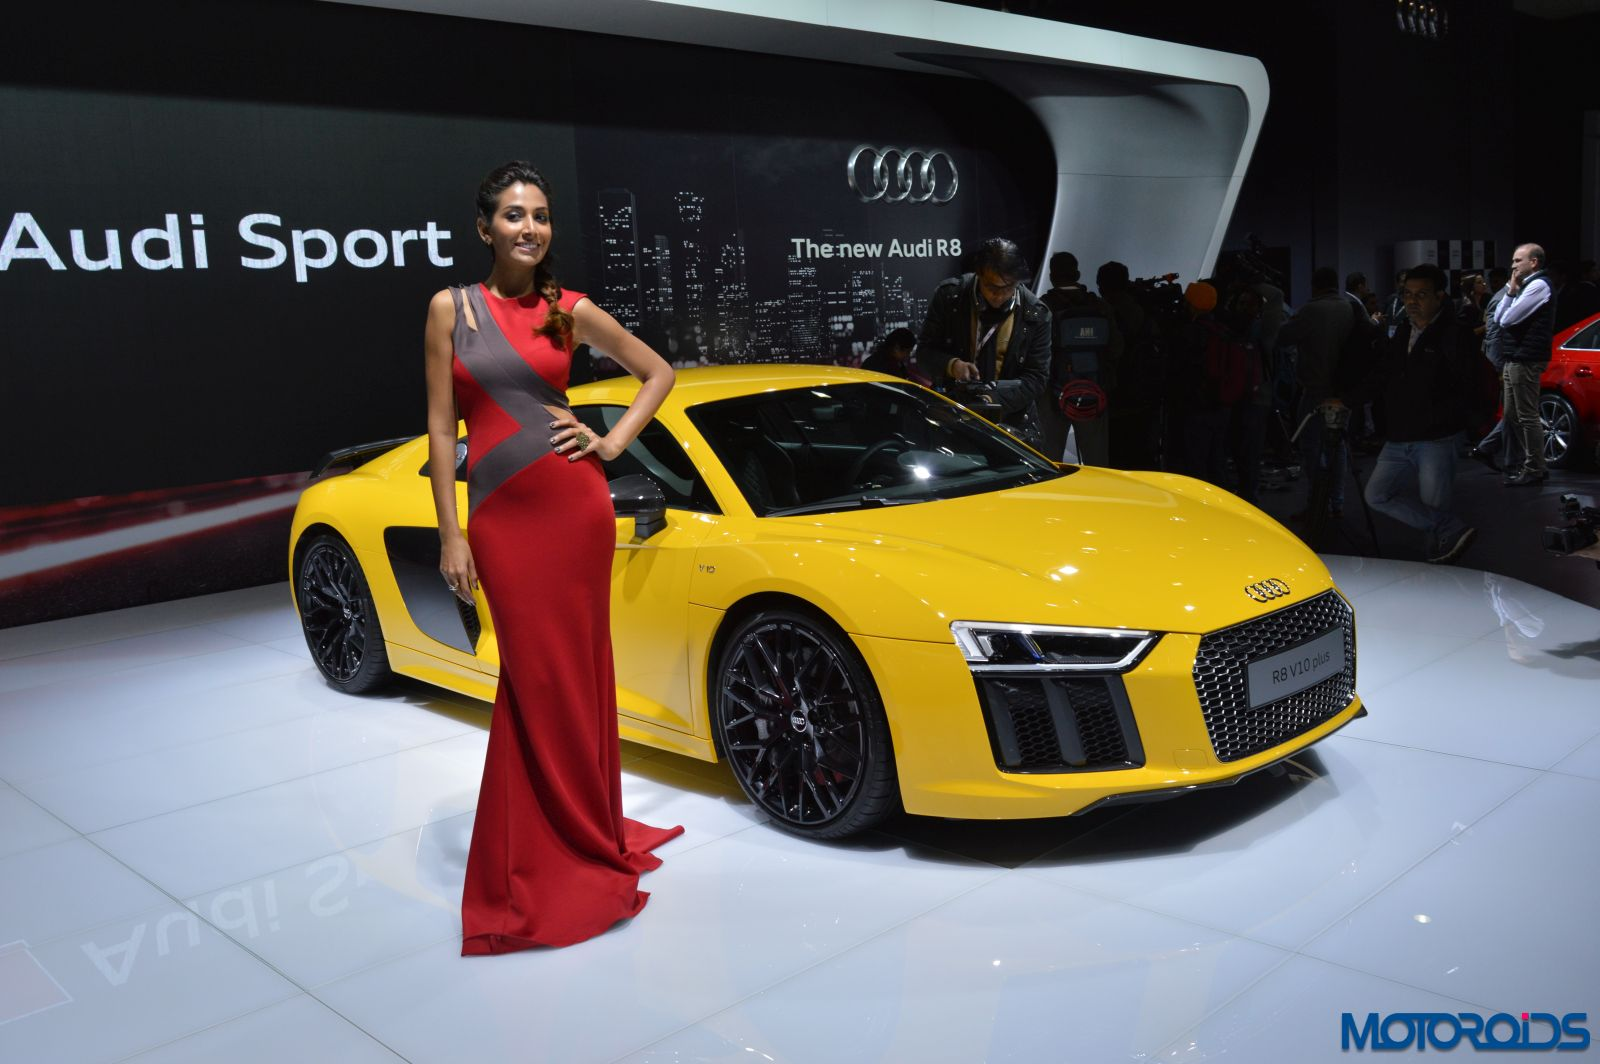 All New Audi R8 V10 Launched In India Prices Start At Inr